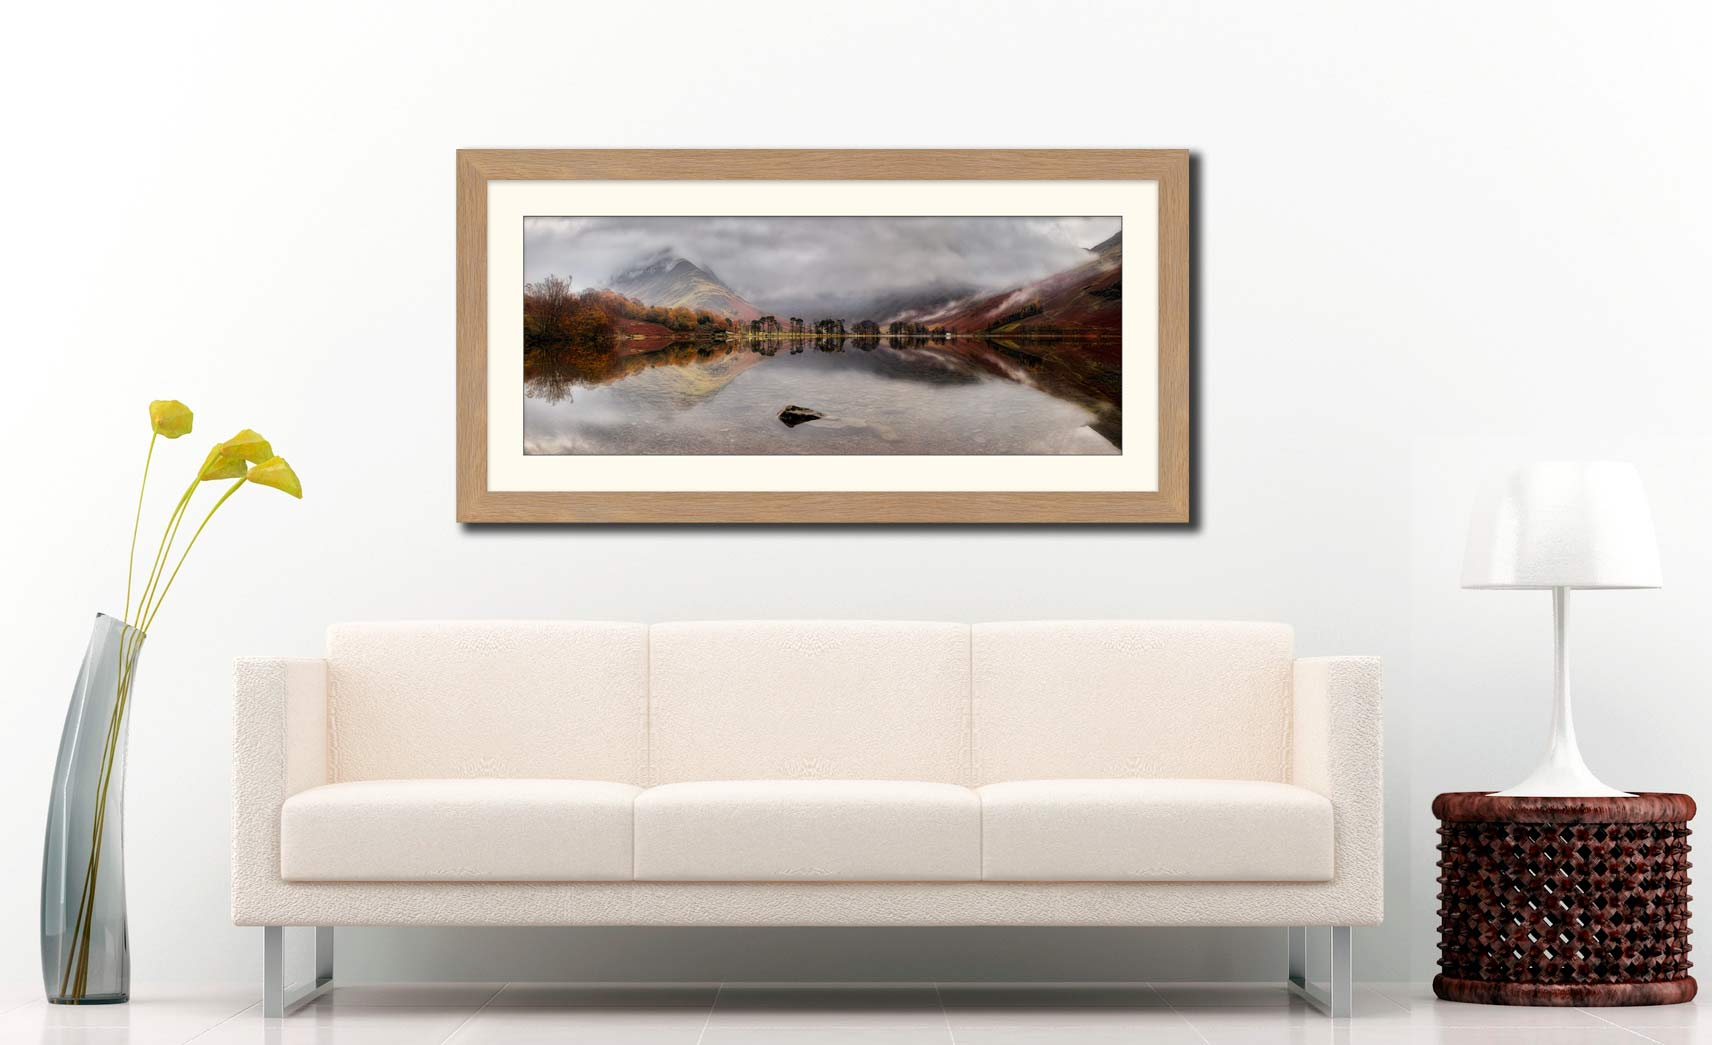 Buttermere Between the Showers - Framed Print with Mount on Wall